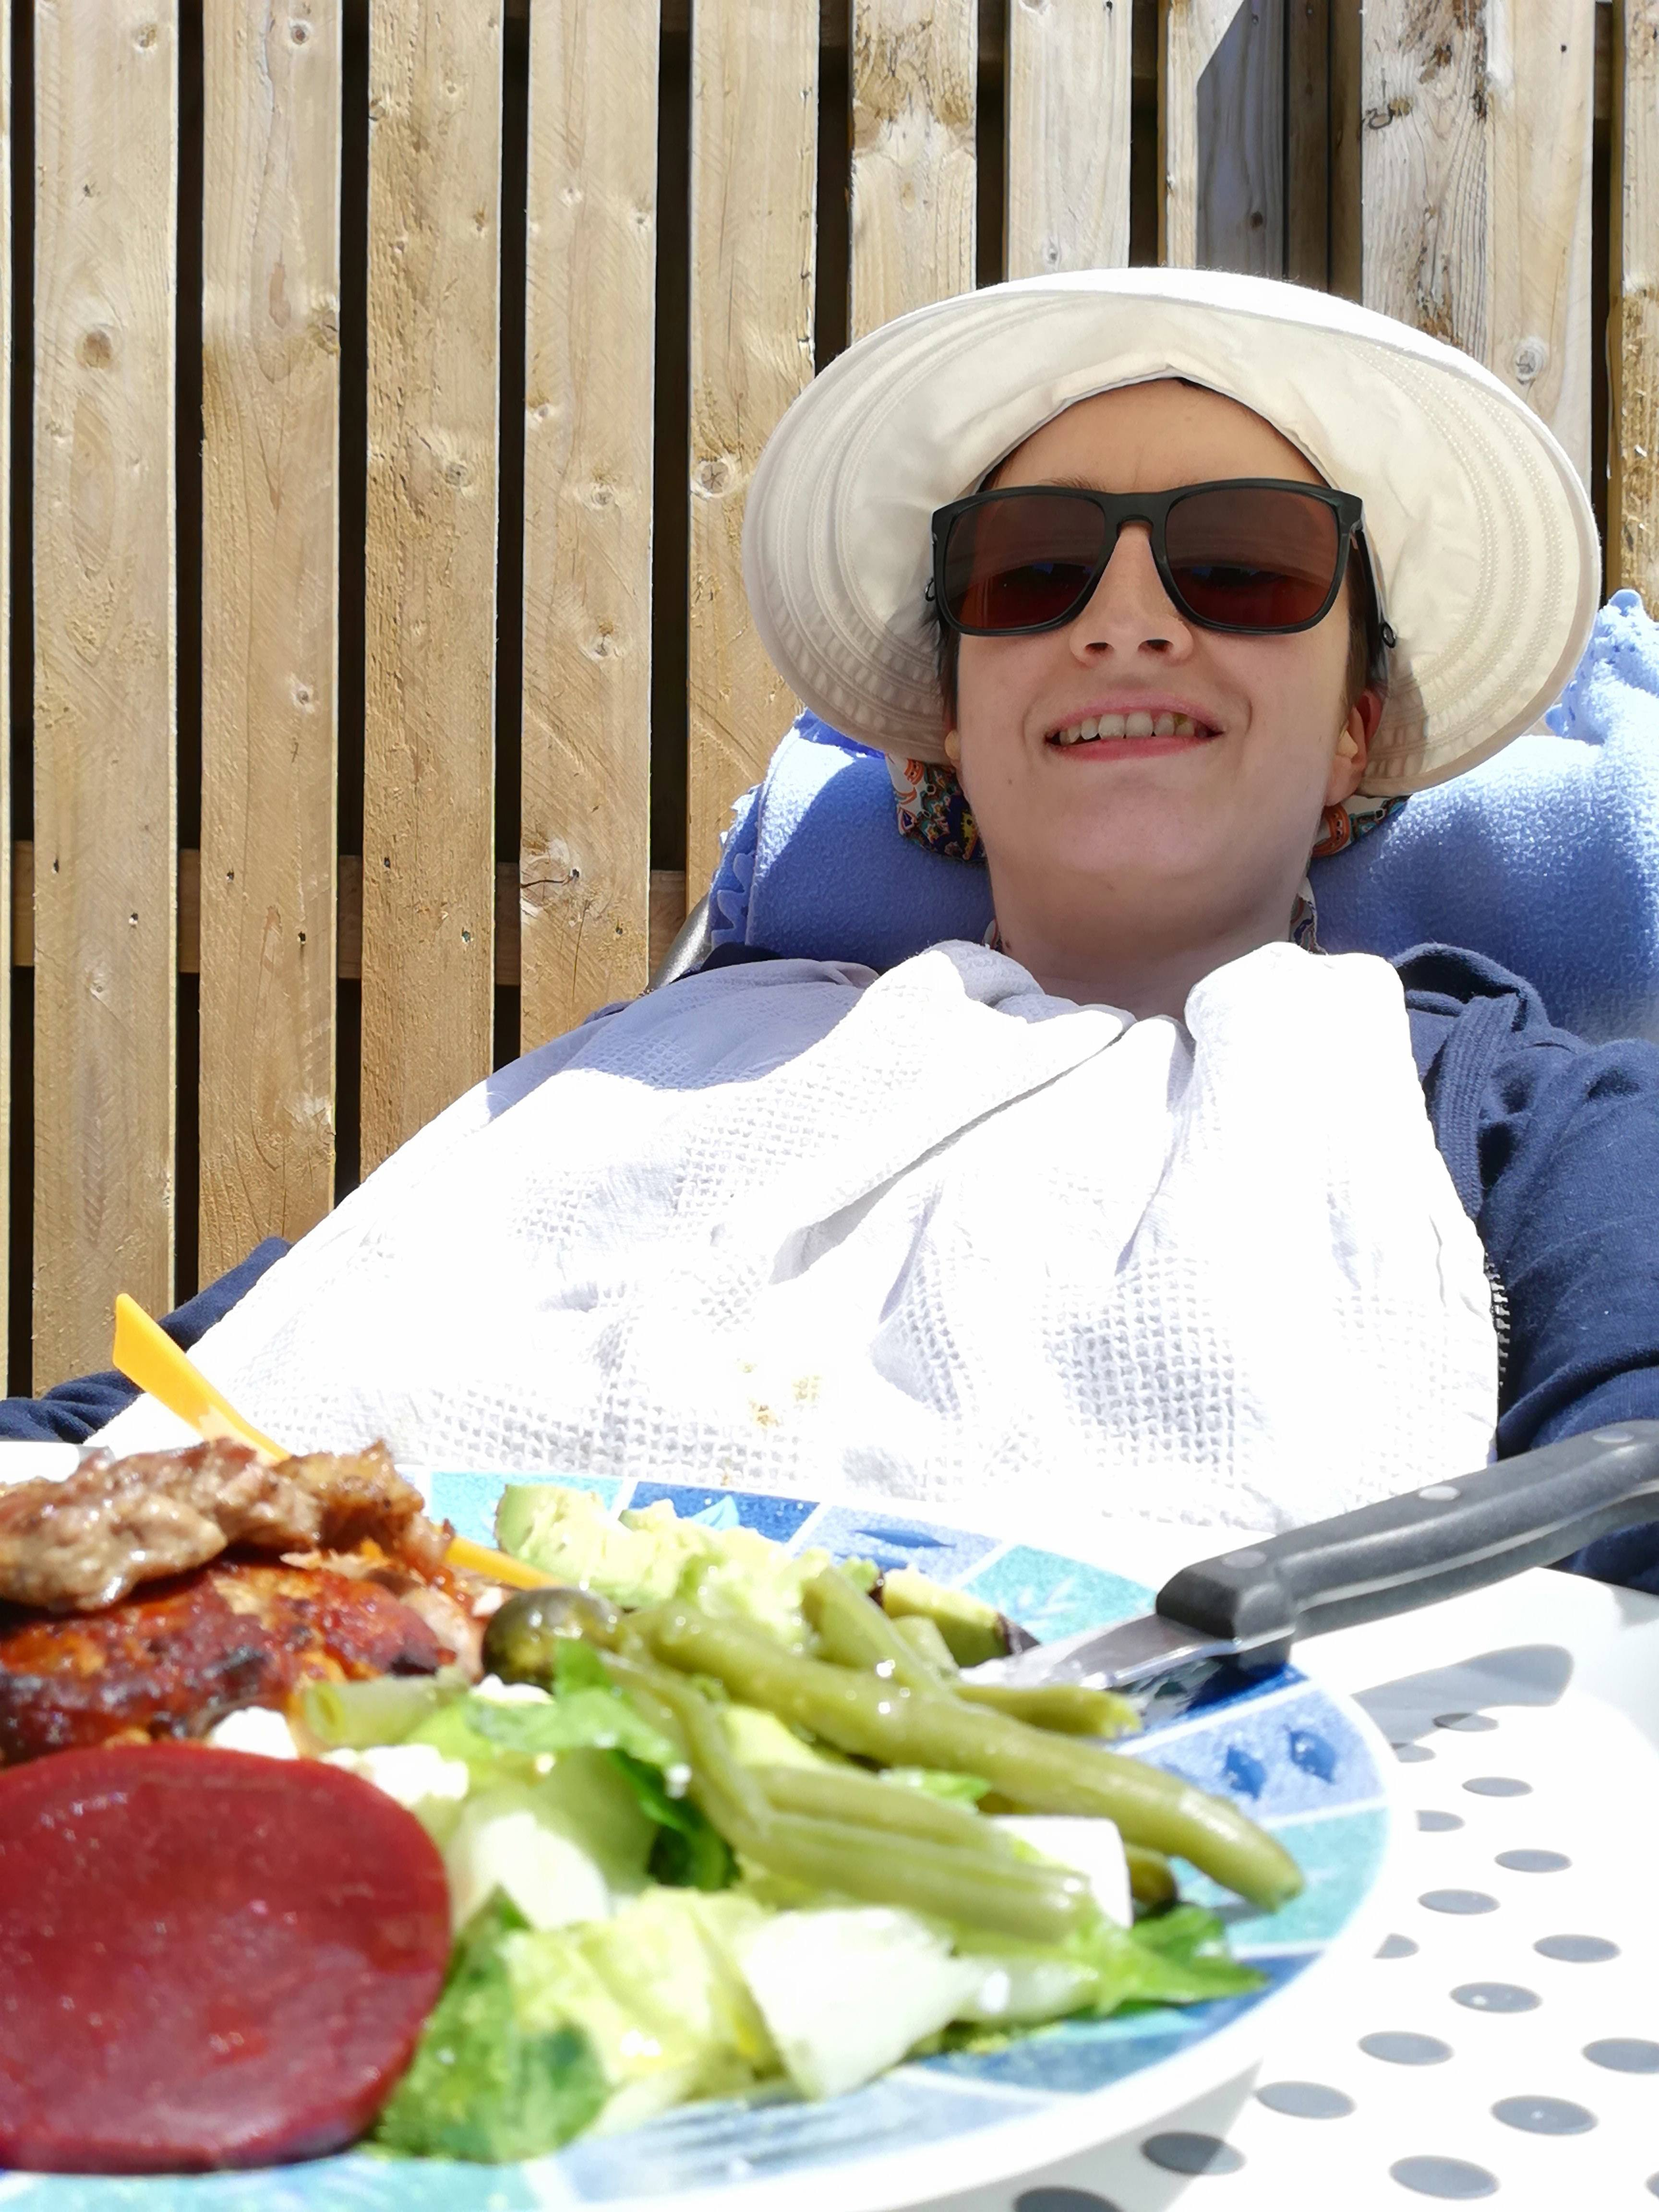 Char lying on garden recliner with a plate of food. She's wearing a sun hat, sunglasses and a bib.